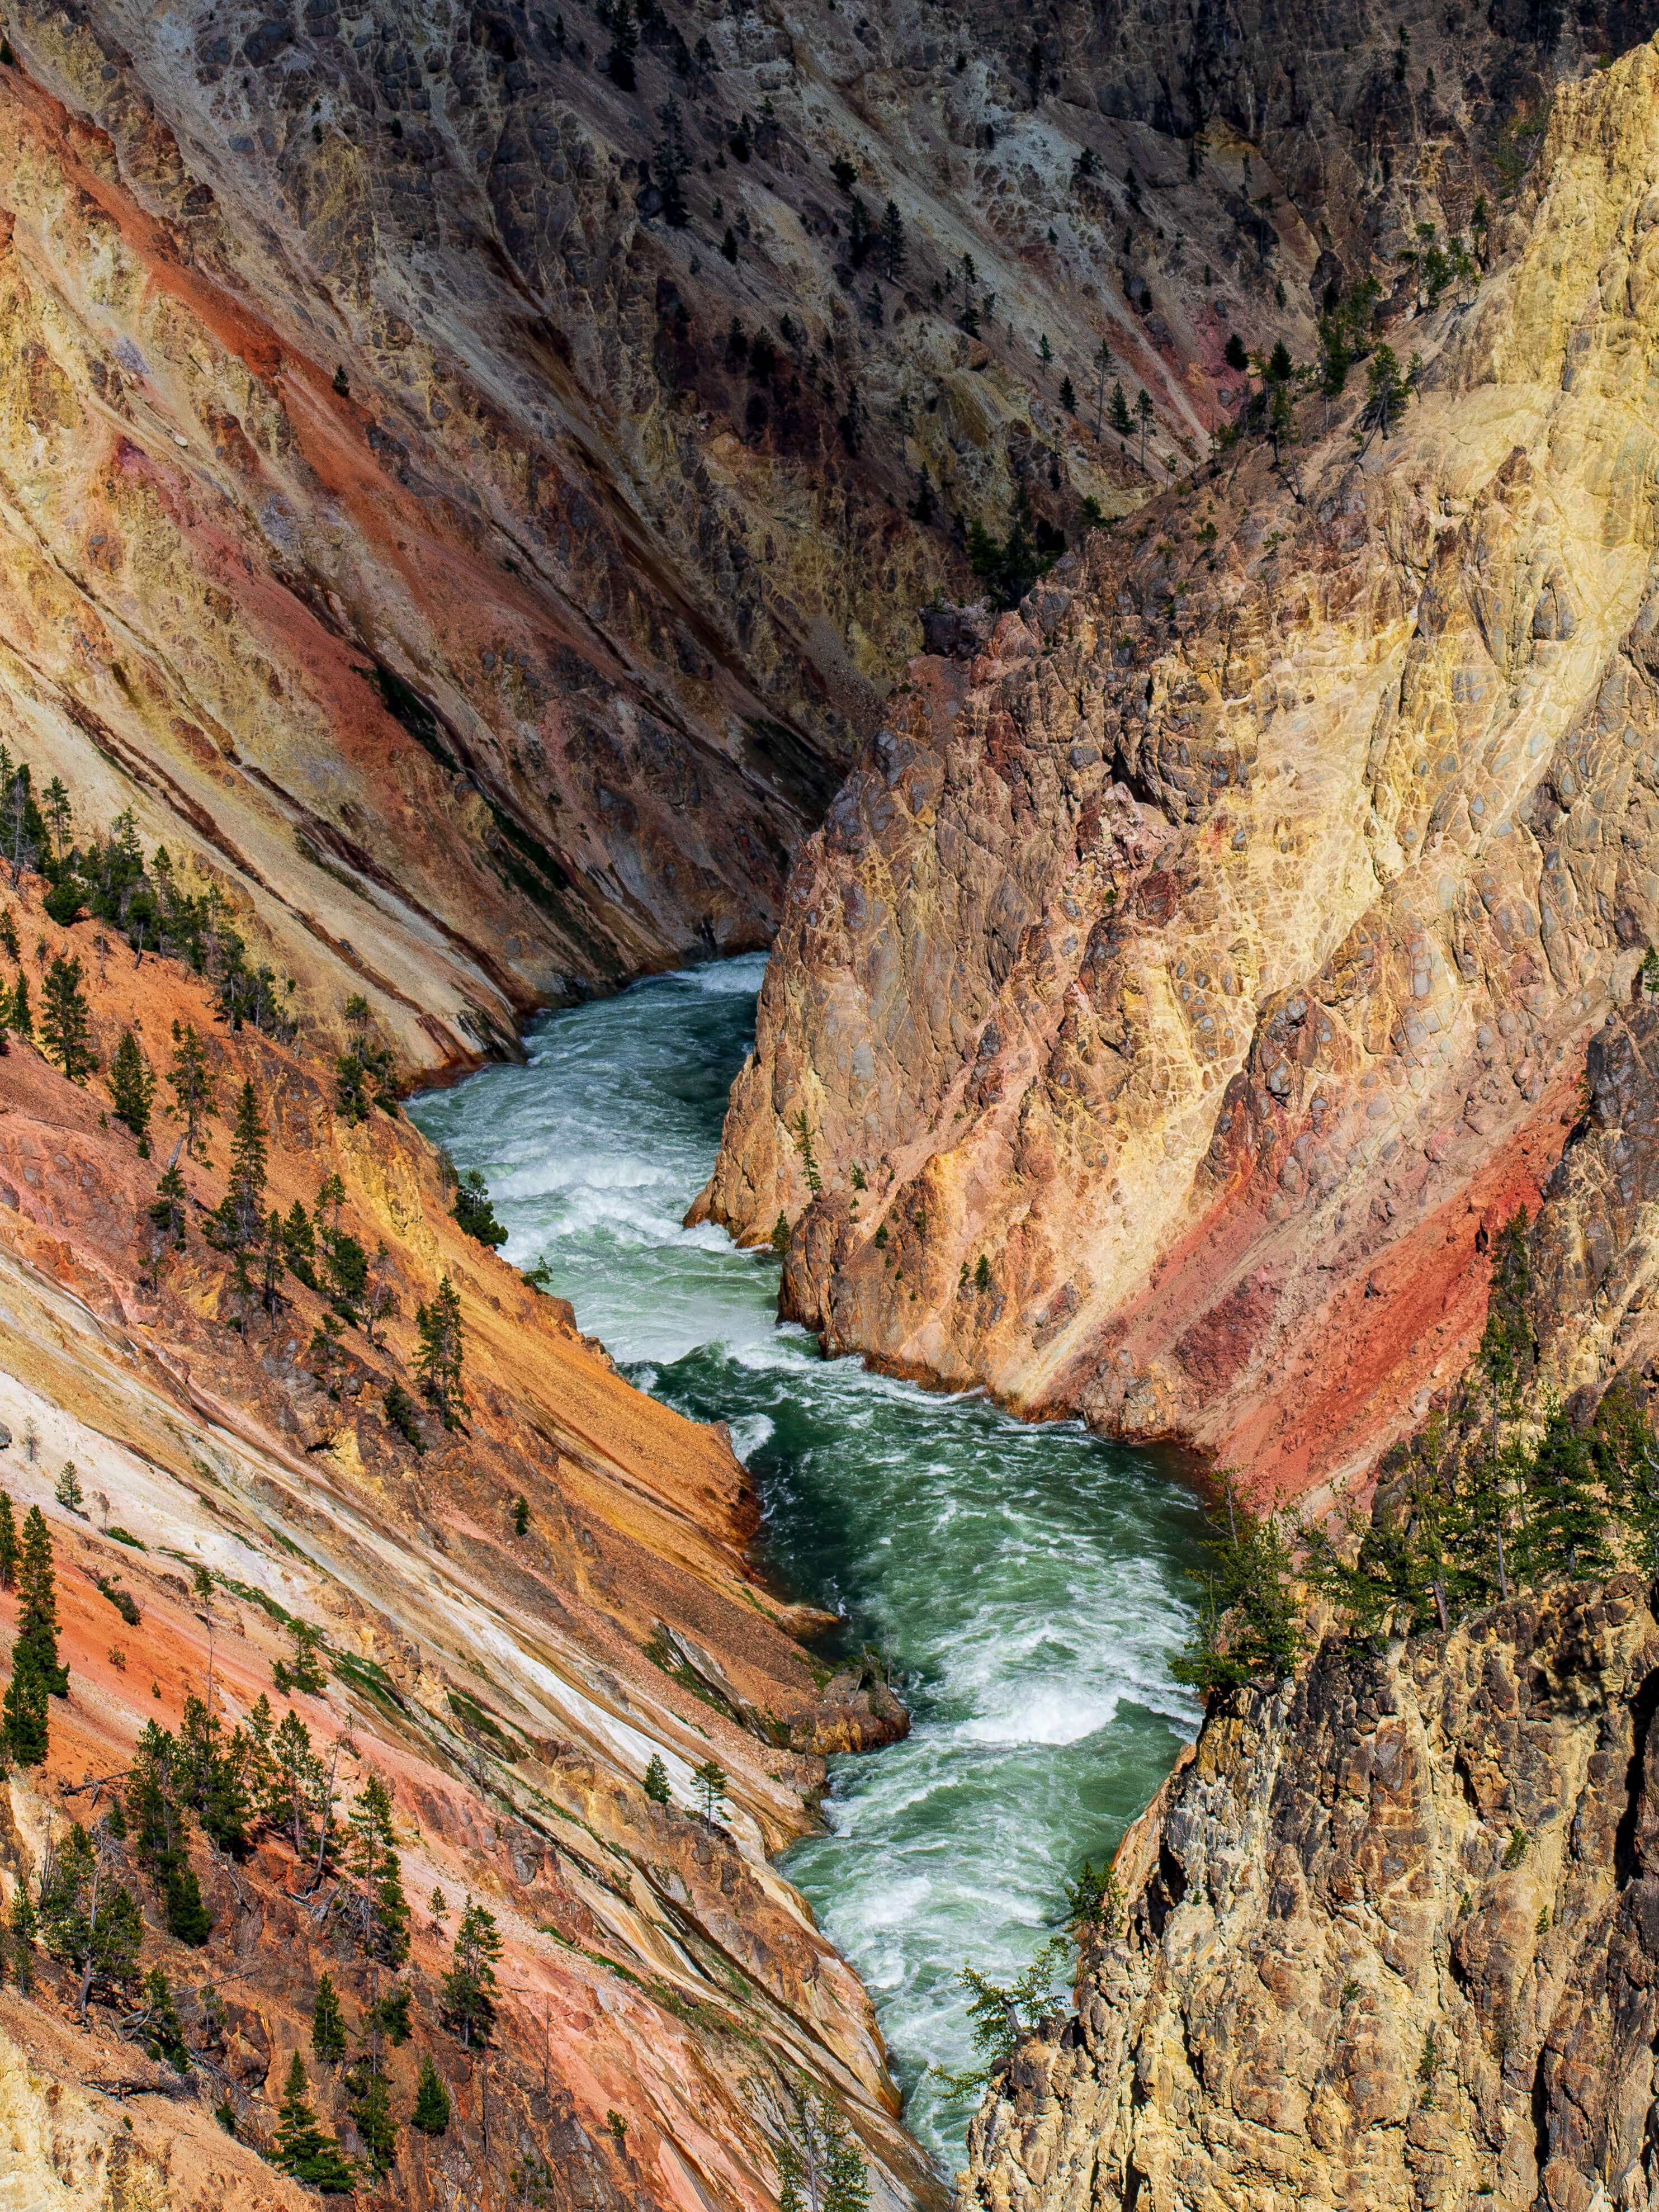 The Grand Canyon of Yellowstone with Yellowstone River